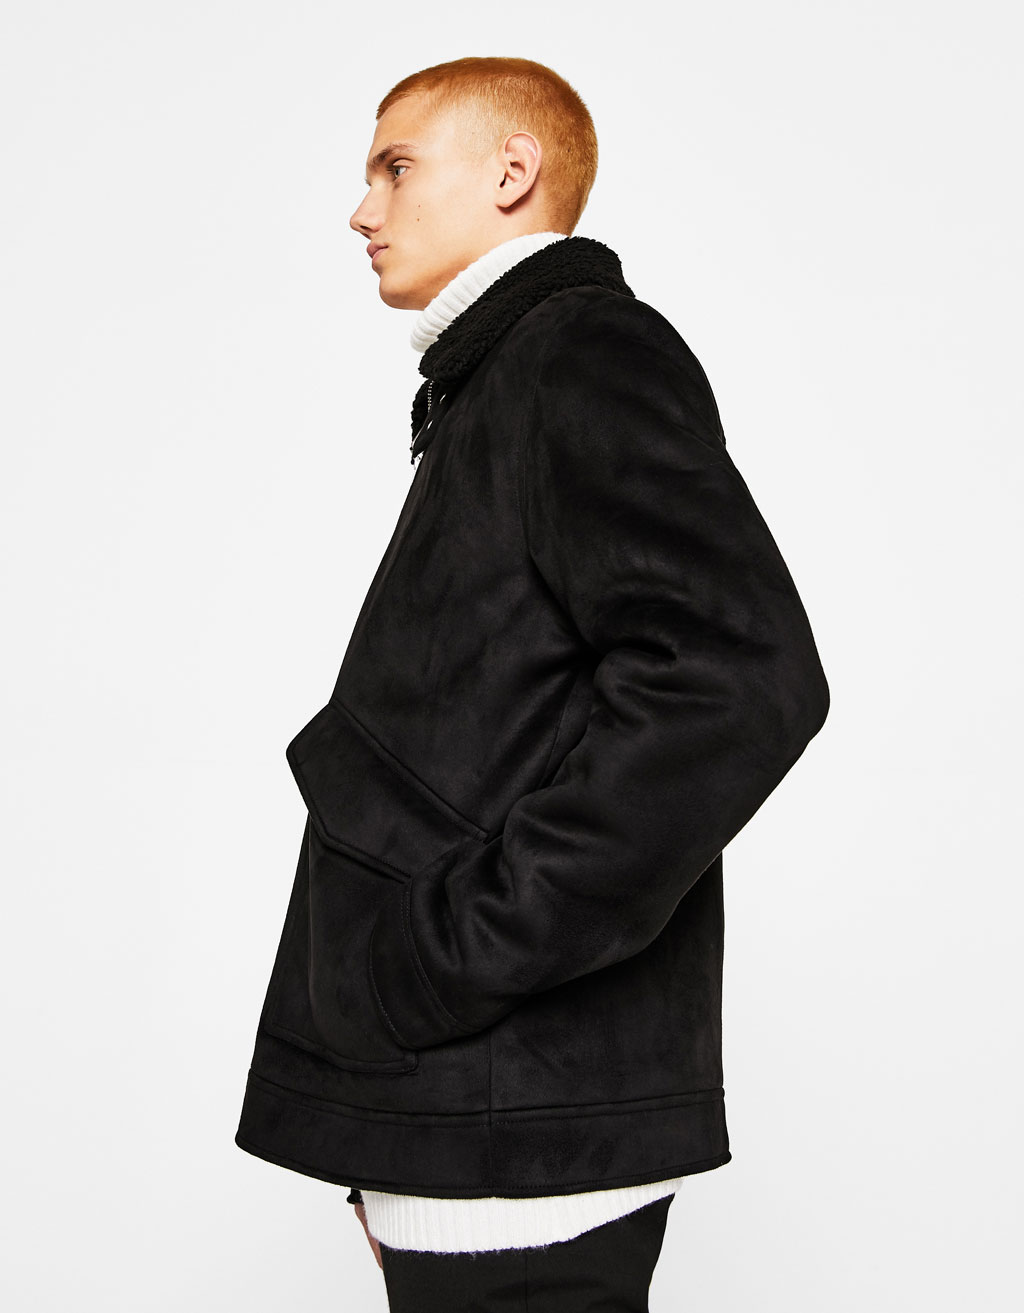 Jacket with fleece collar